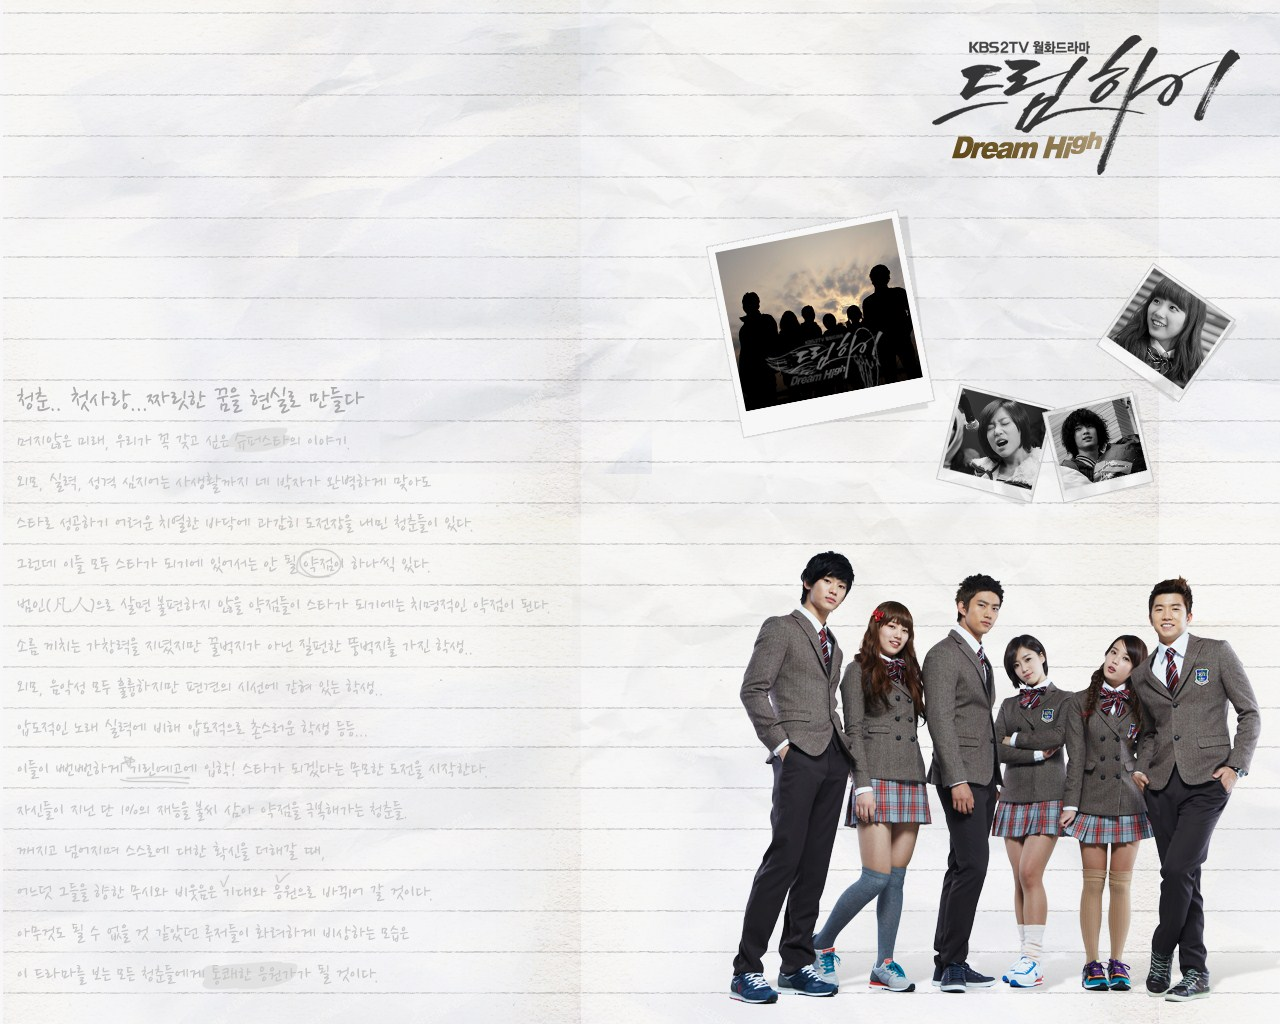 http://3.bp.blogspot.com/-F7N74V0MkuI/TdXfx-FnuzI/AAAAAAAAAUM/Rihb4b8vCfc/s1600/Dream-High-Korean-Drama-Official-Wallpaper-Taecyon-of-2PM-Suzy-of-Miss-A-Ham-Eun-jung-of-T-ara-IU-Wooyoung-of-2PM-Kim-Soo-Hyun.jpg